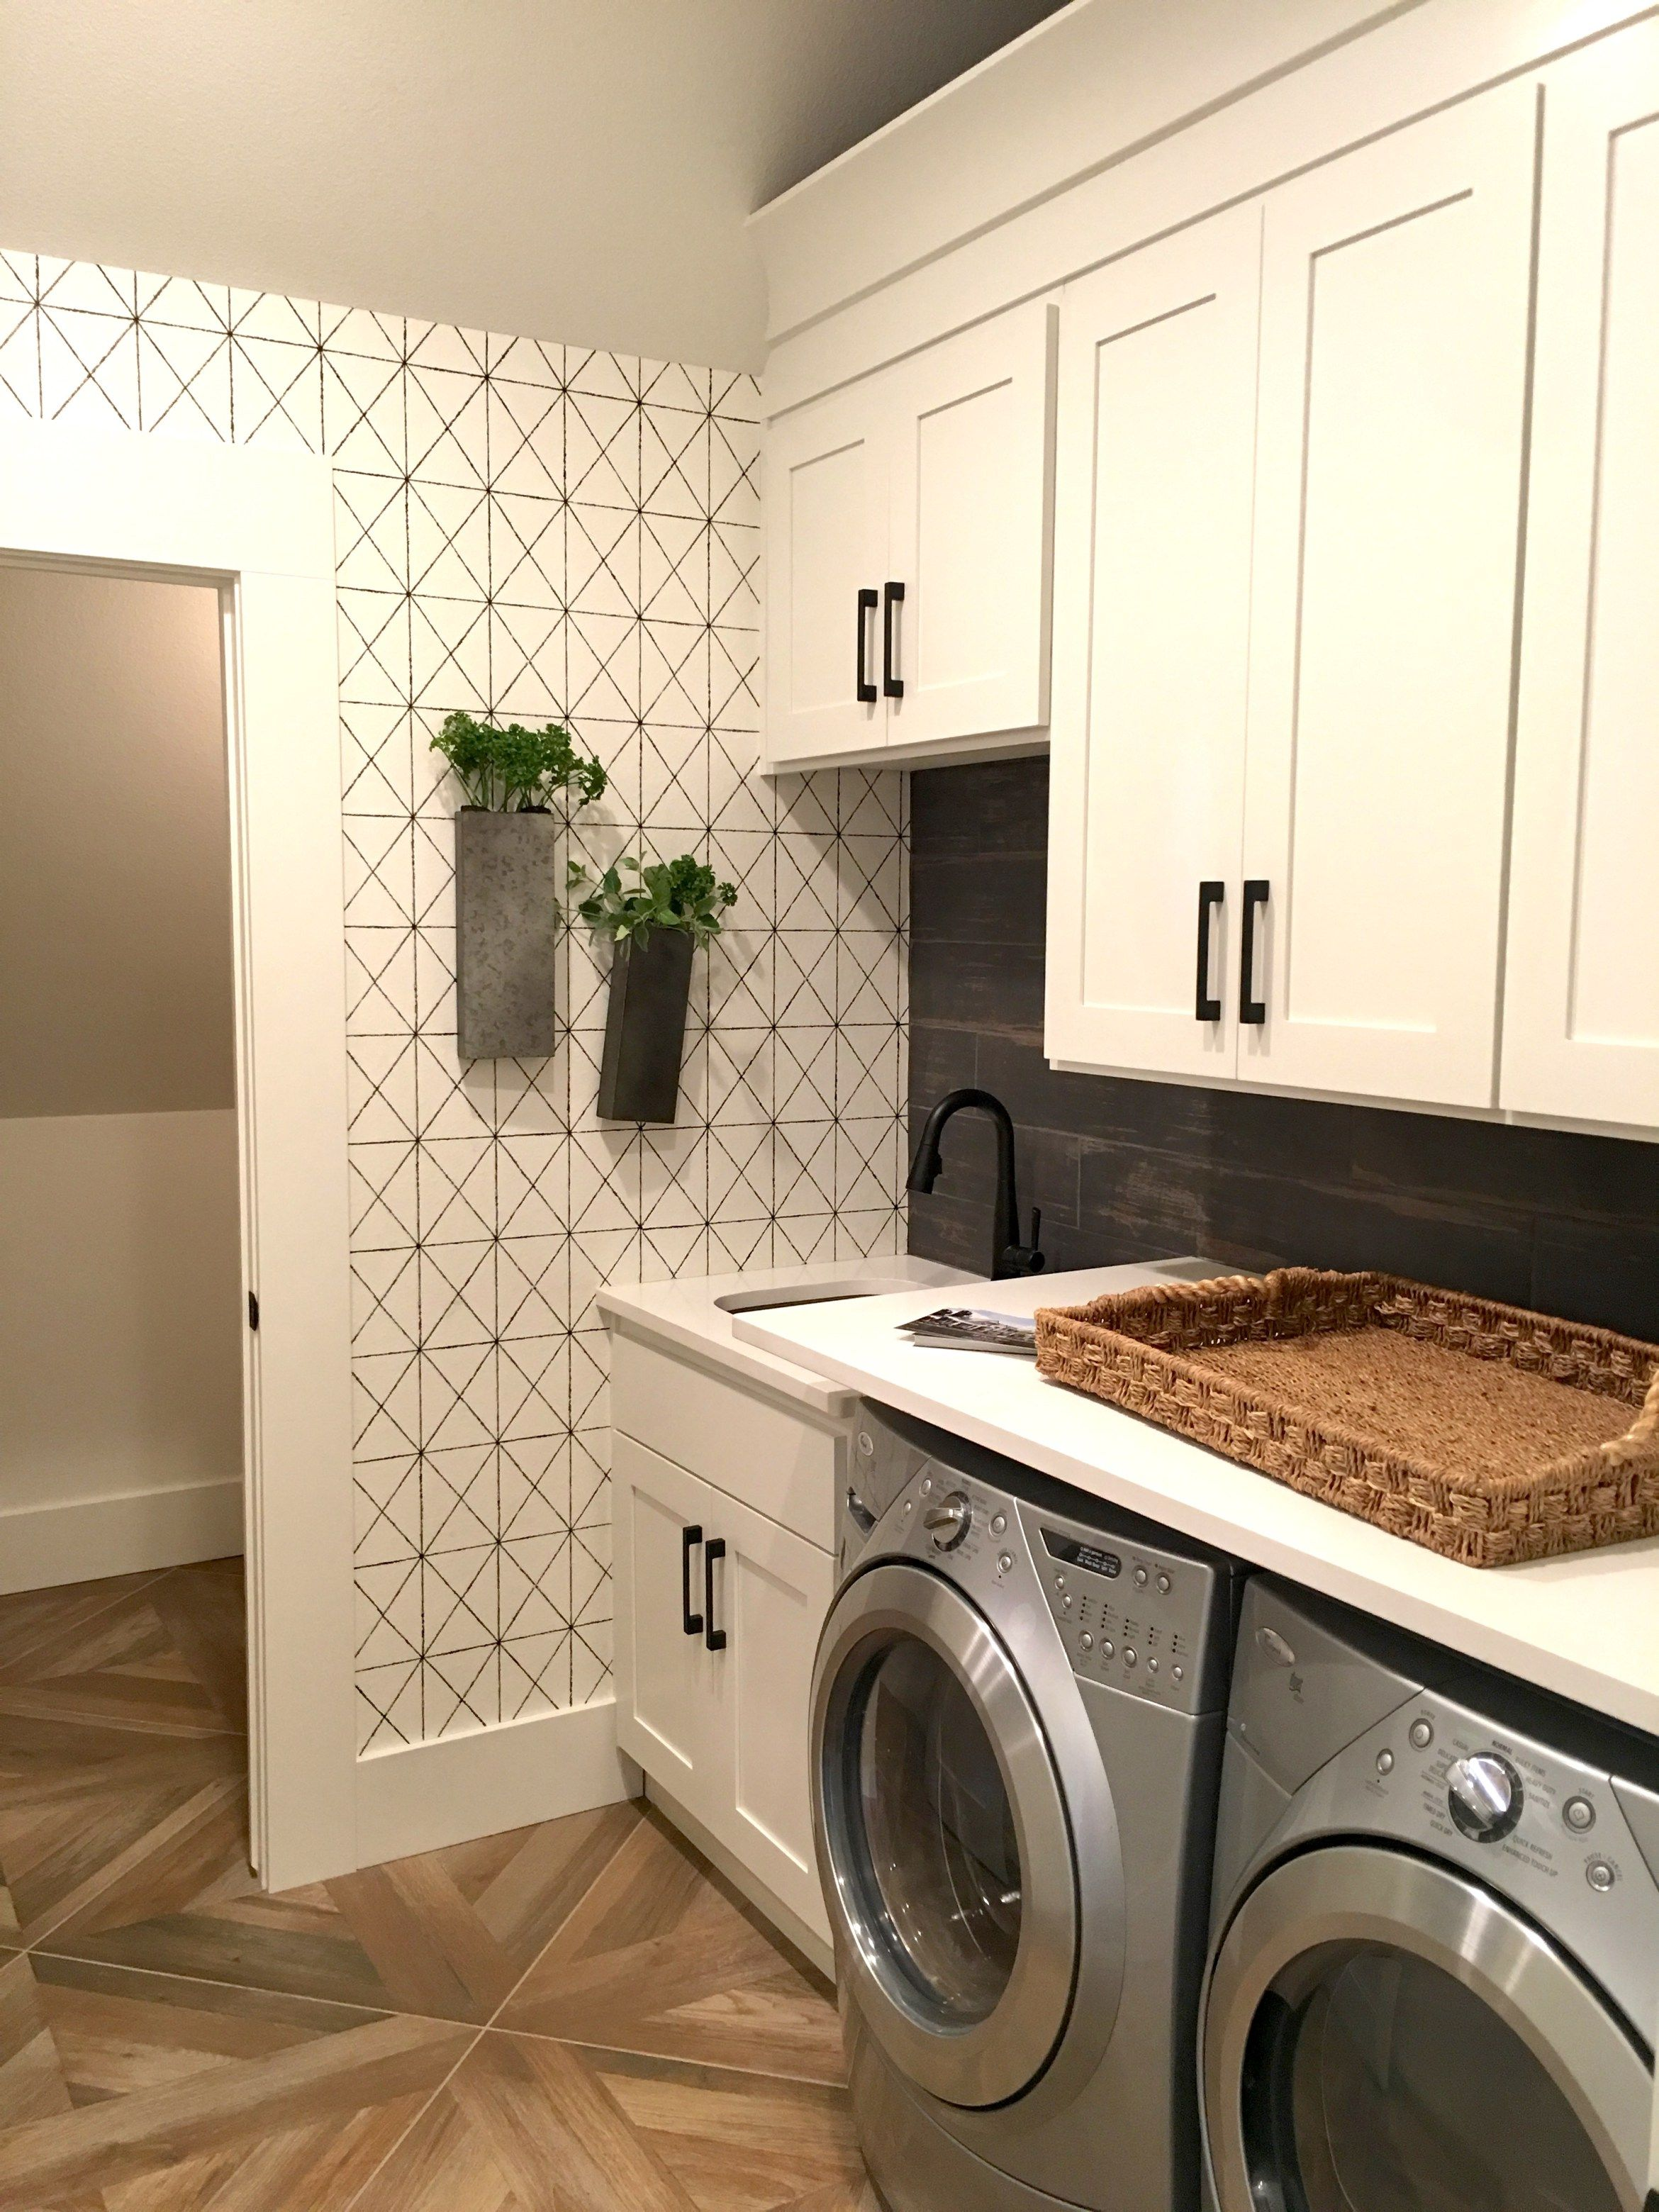 2017 Design Trends and Tips | Laundry room wall decor ...